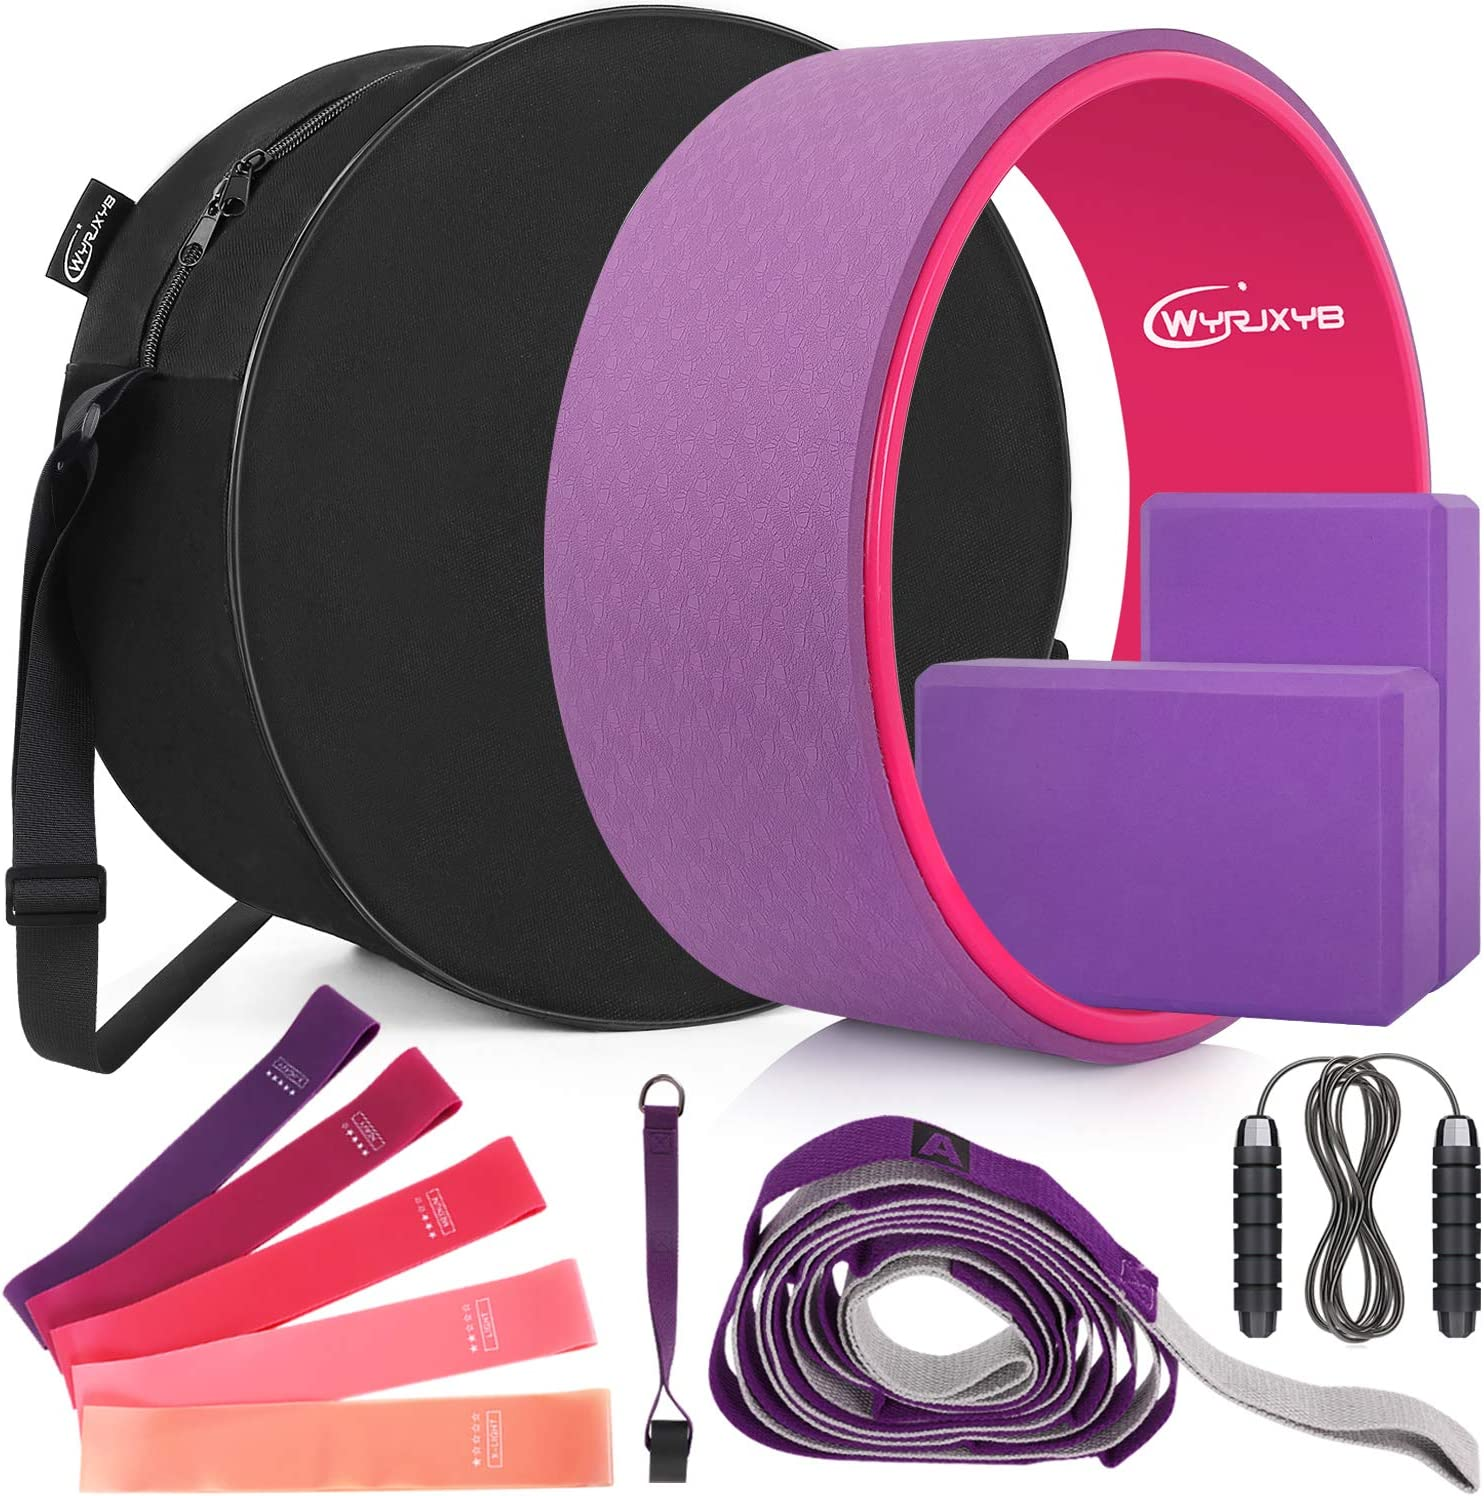 WYRJXYB Yoga Wheel Set (11-in-1), Yoga Back Roller and 2 Yoga Blocks with Strap for Back Pain, Stretching and Improving Backbends, Include Resistance Bands, Yoga Wheel Bag and Jump Rope (Purple) : Sports & Outdoors